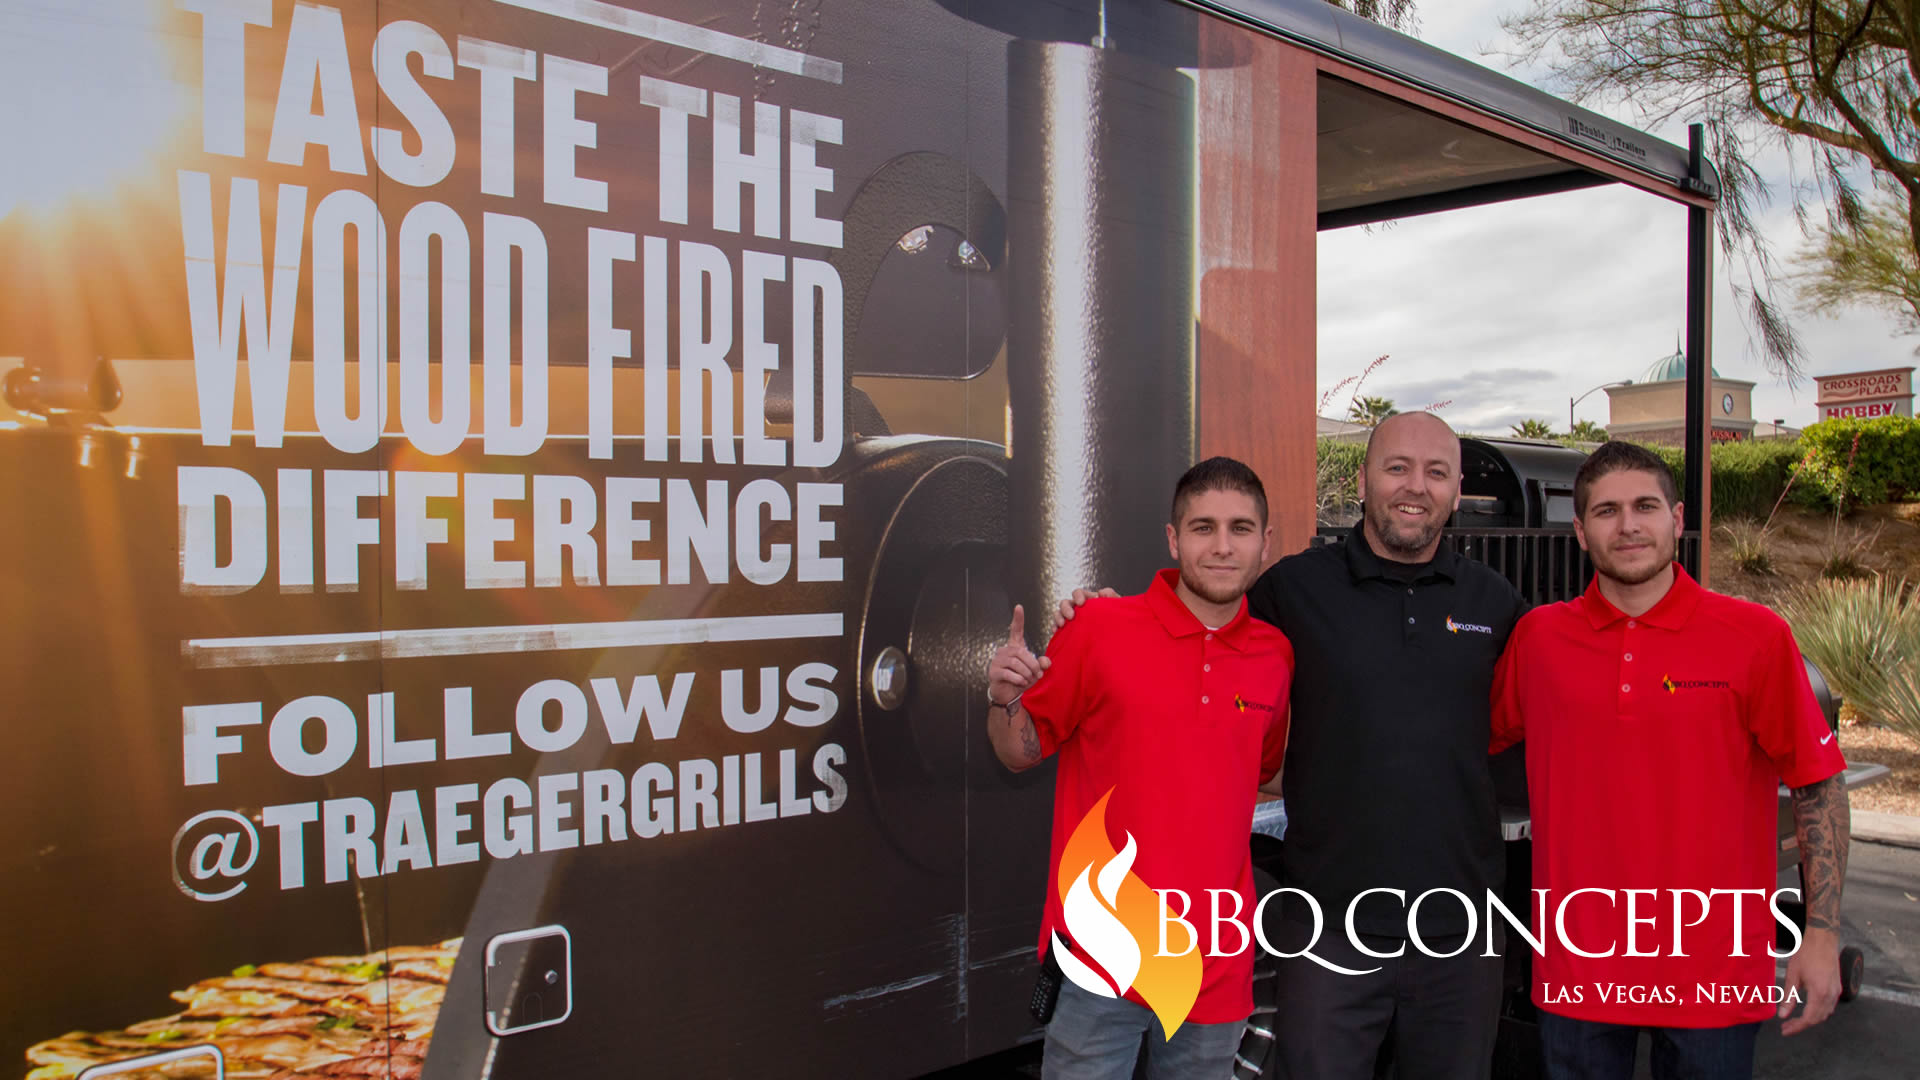 BBQ Concepts Team Hosting Traeger Barbecue Classics Shop Class - April 30th & May 1st 2018